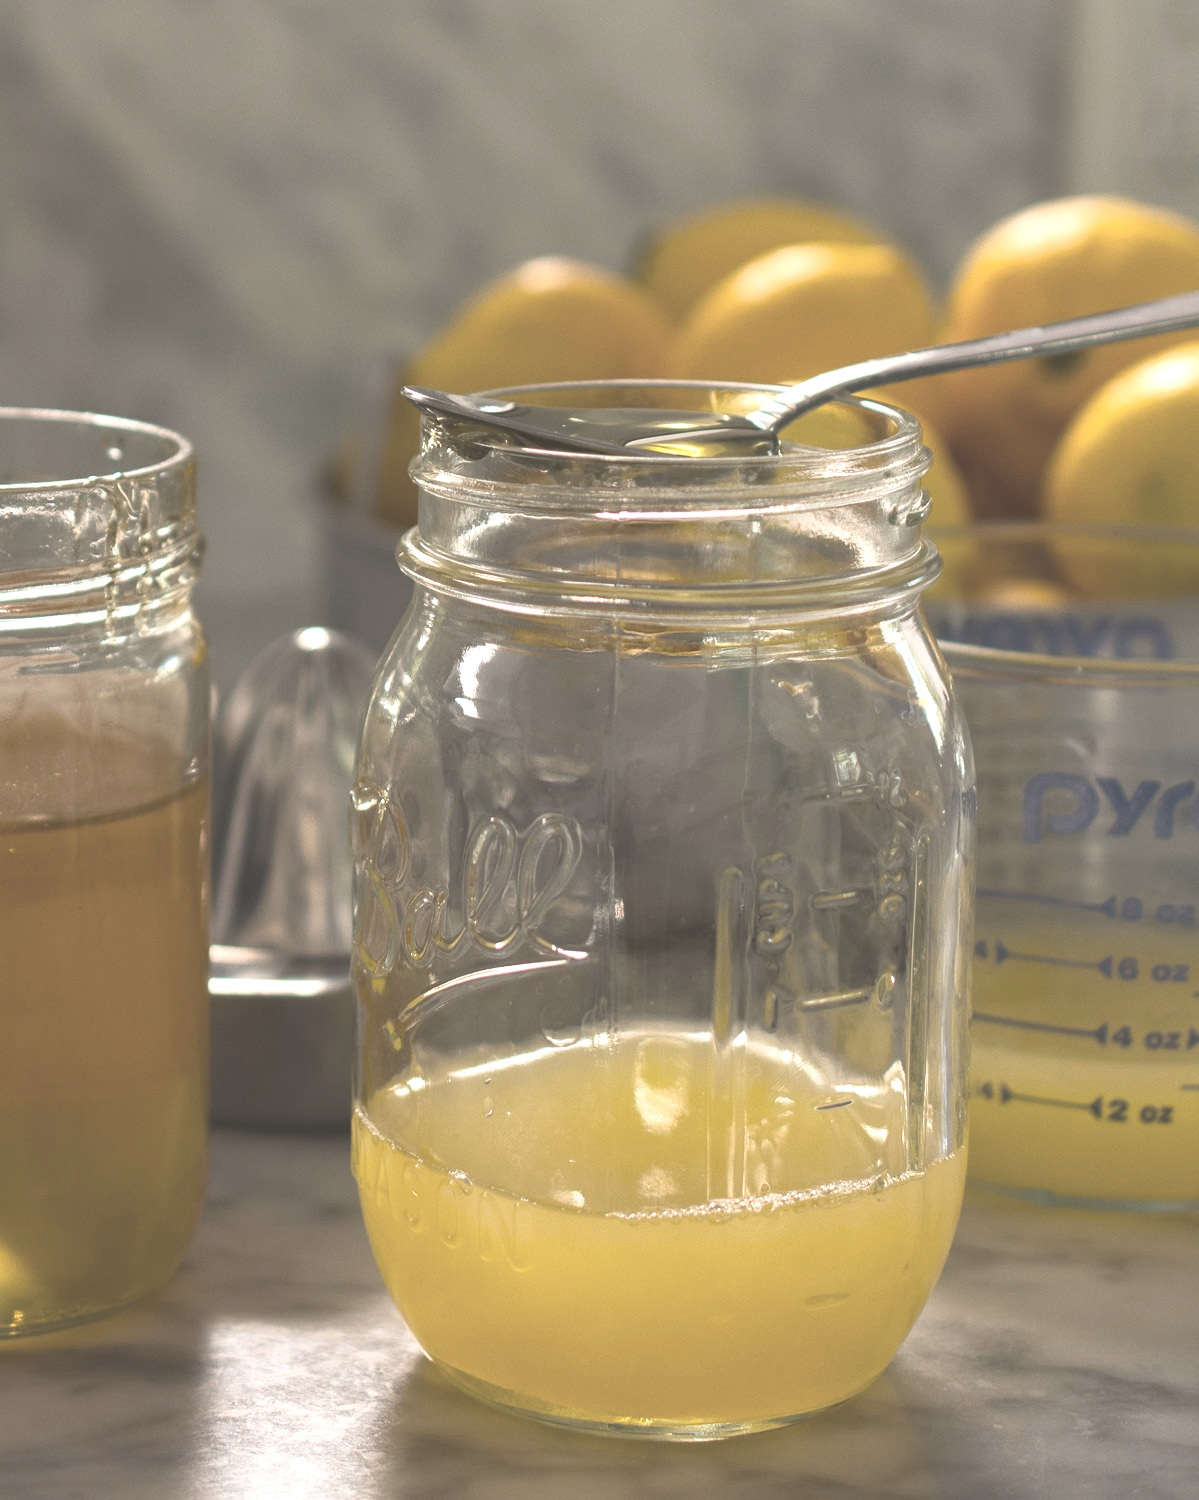 Fresh squeezed Meyer lemon juice and local honey.